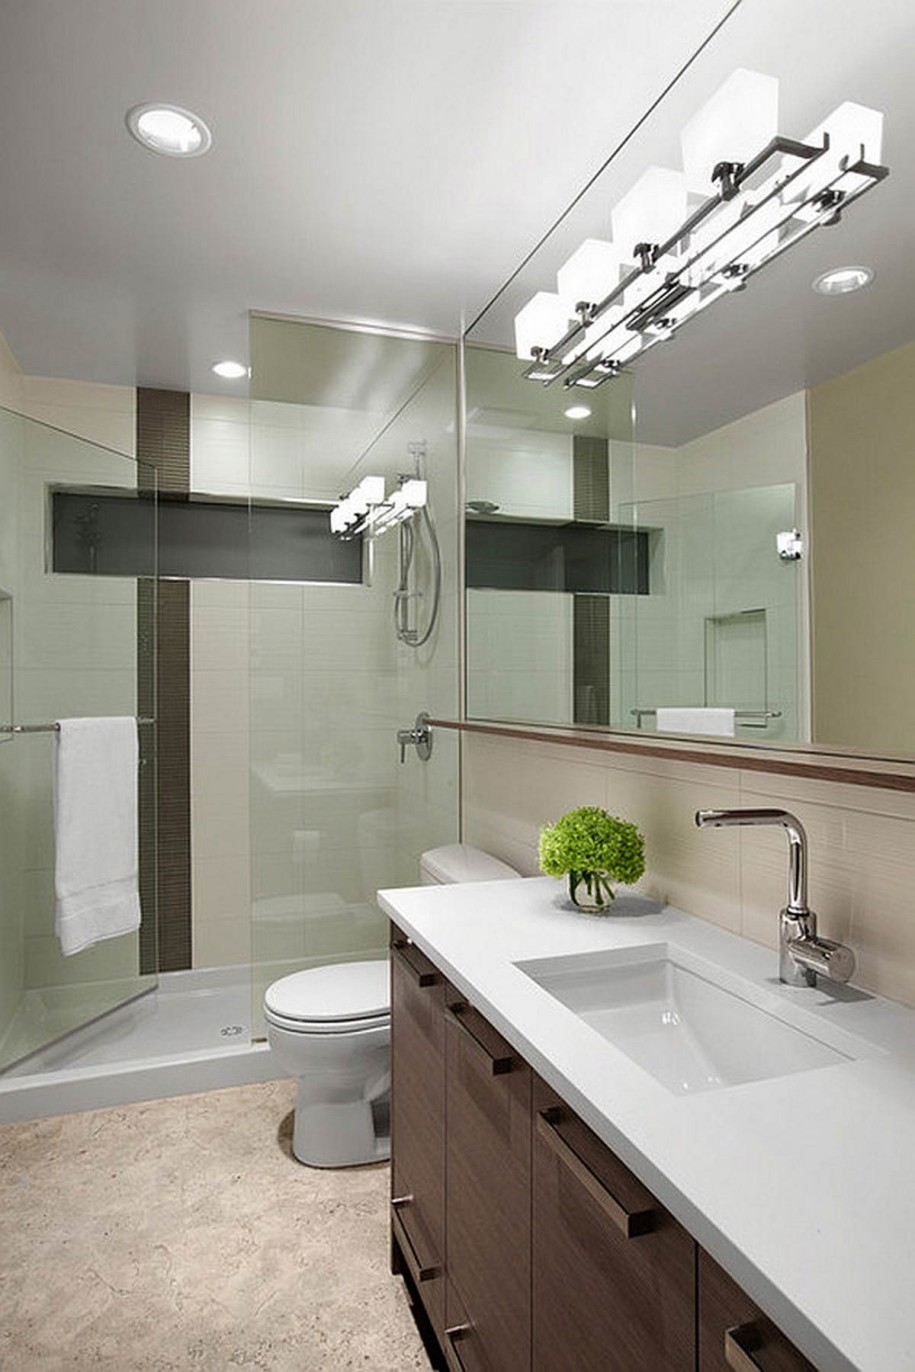 Good-Interior-Design-and-Bathroom-Lighting-Ideas-Ceiling-Lamps-In-Modern-Bathroom-Design-Bathroom-Lamps-Design-Ideas